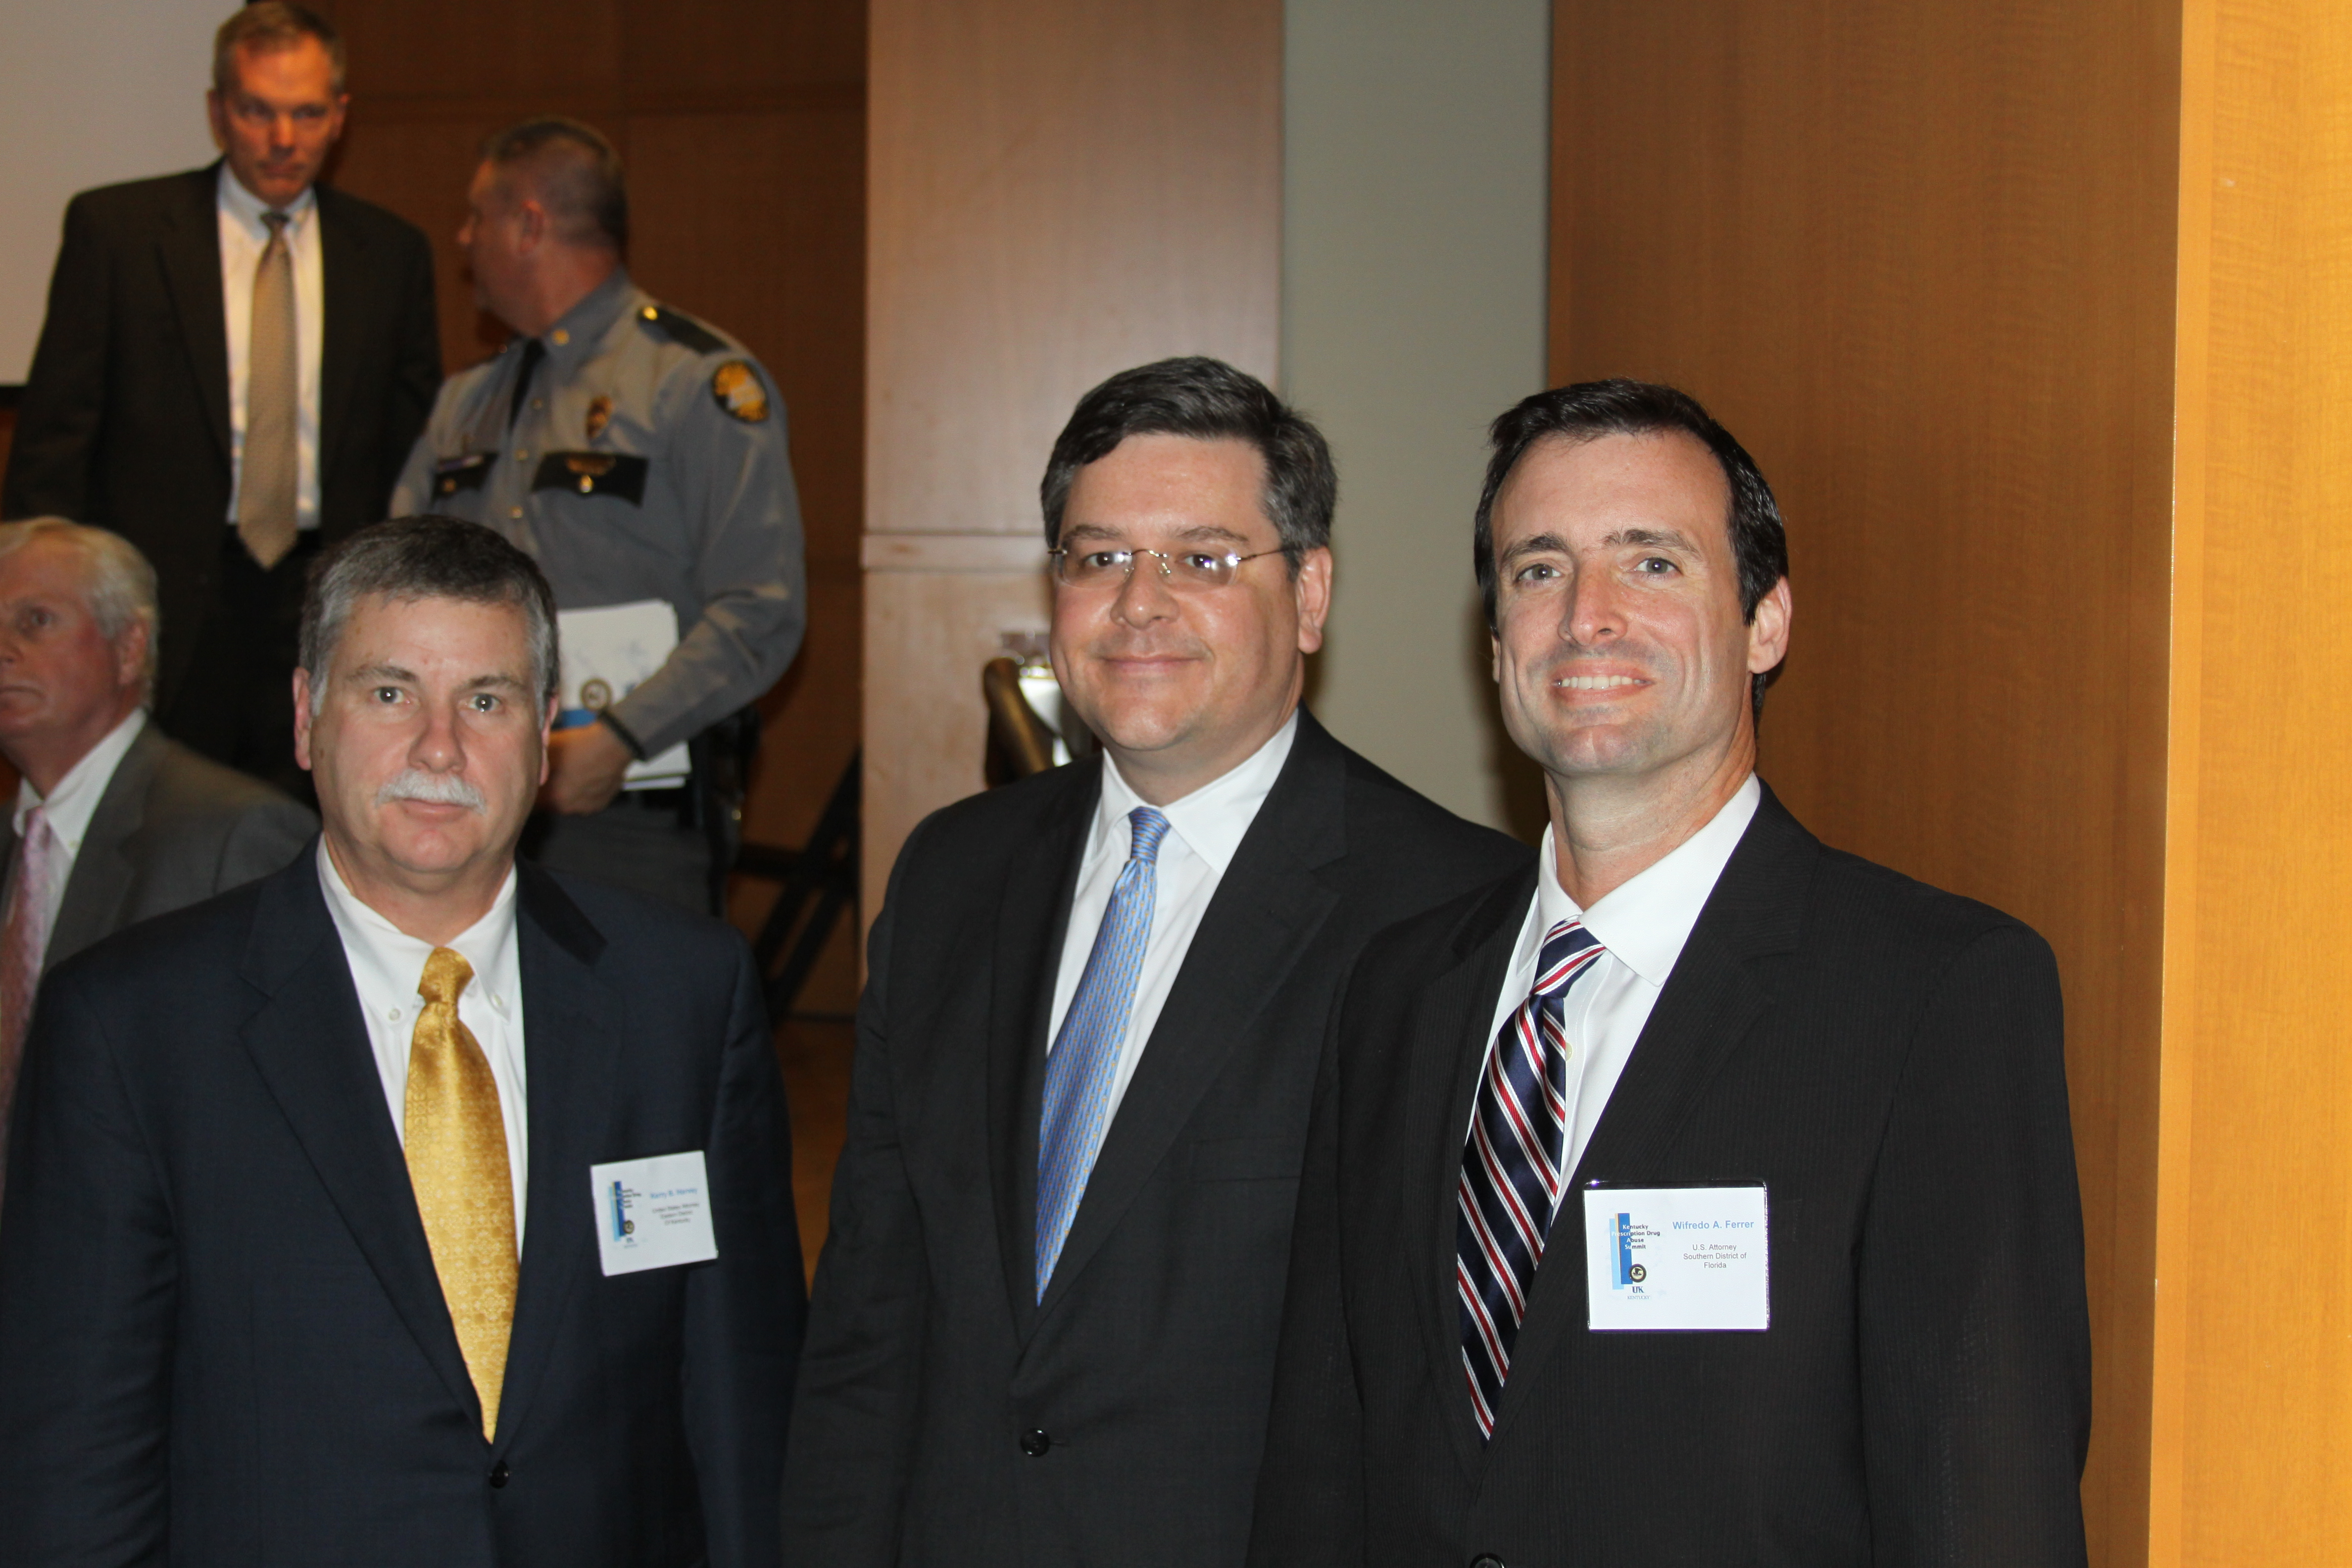 U.S. Attorney Kerry B. Harvey, U.S. Attorney David J. Hale, U.S. Attorney Wifredo Ferrer, Kentucky Prescription Drug Abuse Summit, February 1, 2012, Lexington, Kentucky